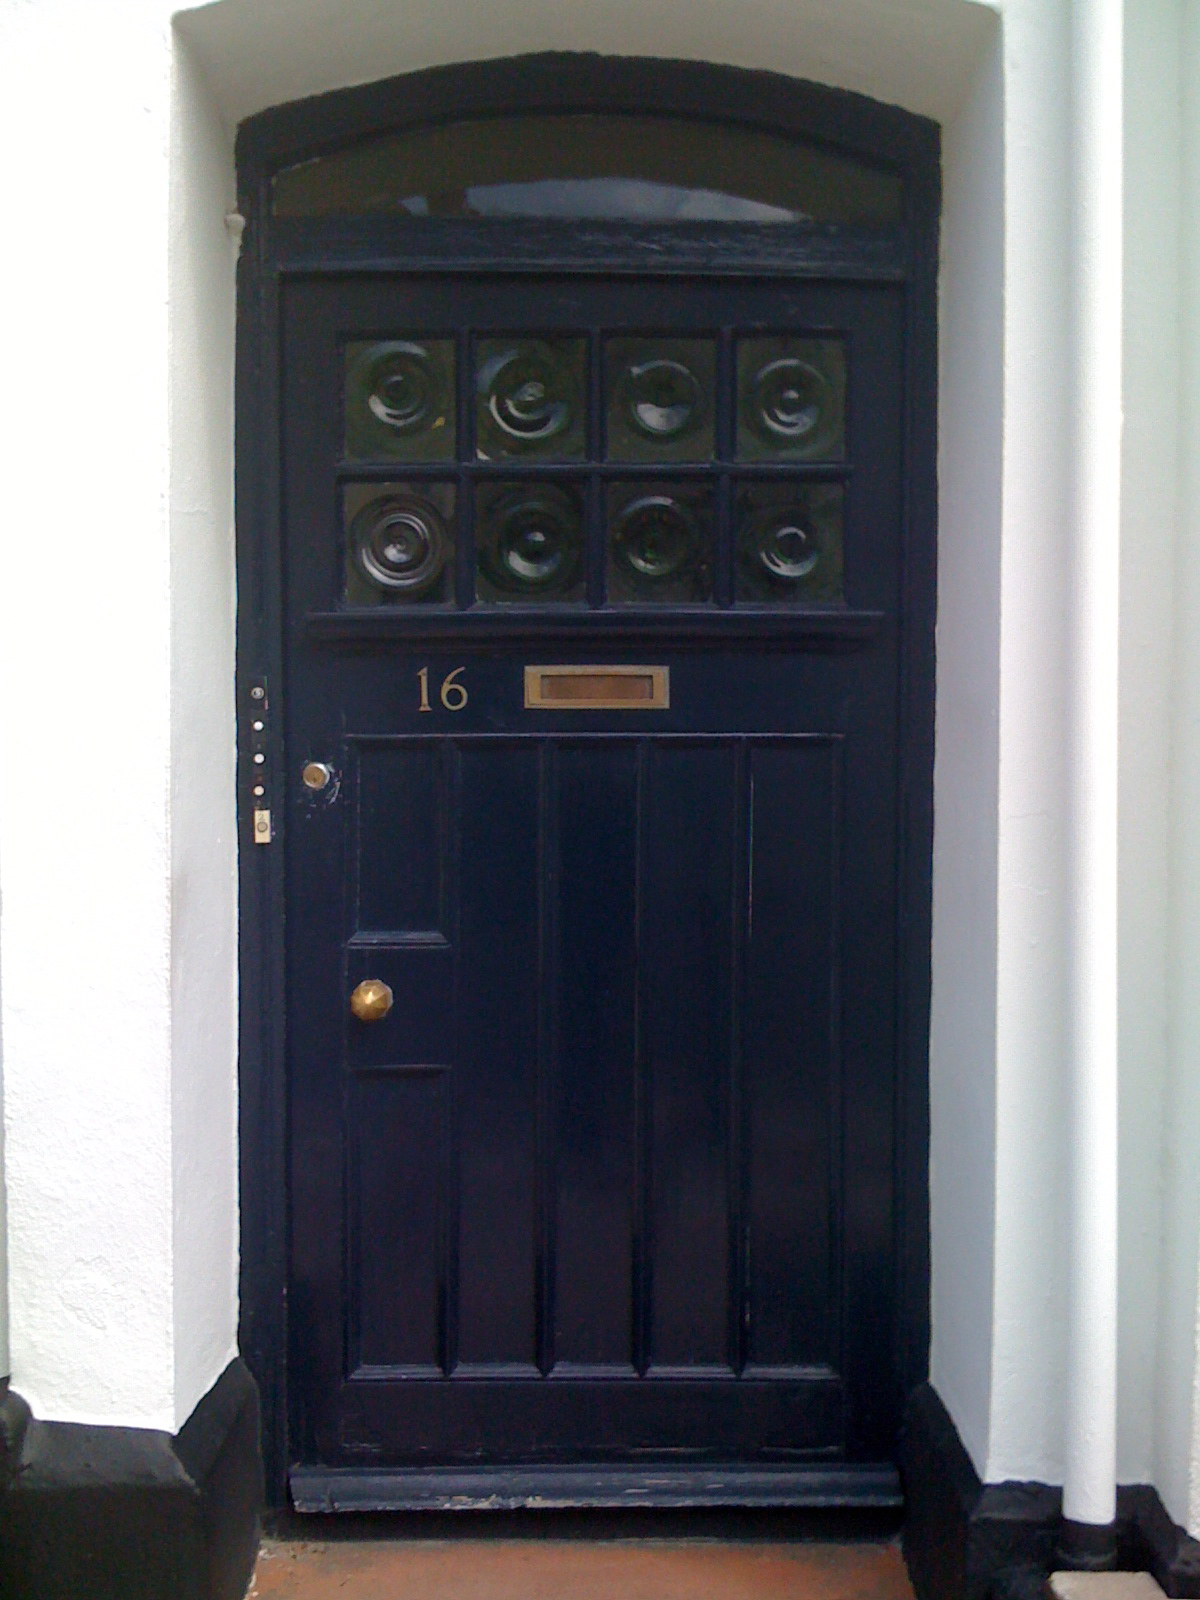 Plymouth, UK - 16 Hill Park Crescent (entrance door)